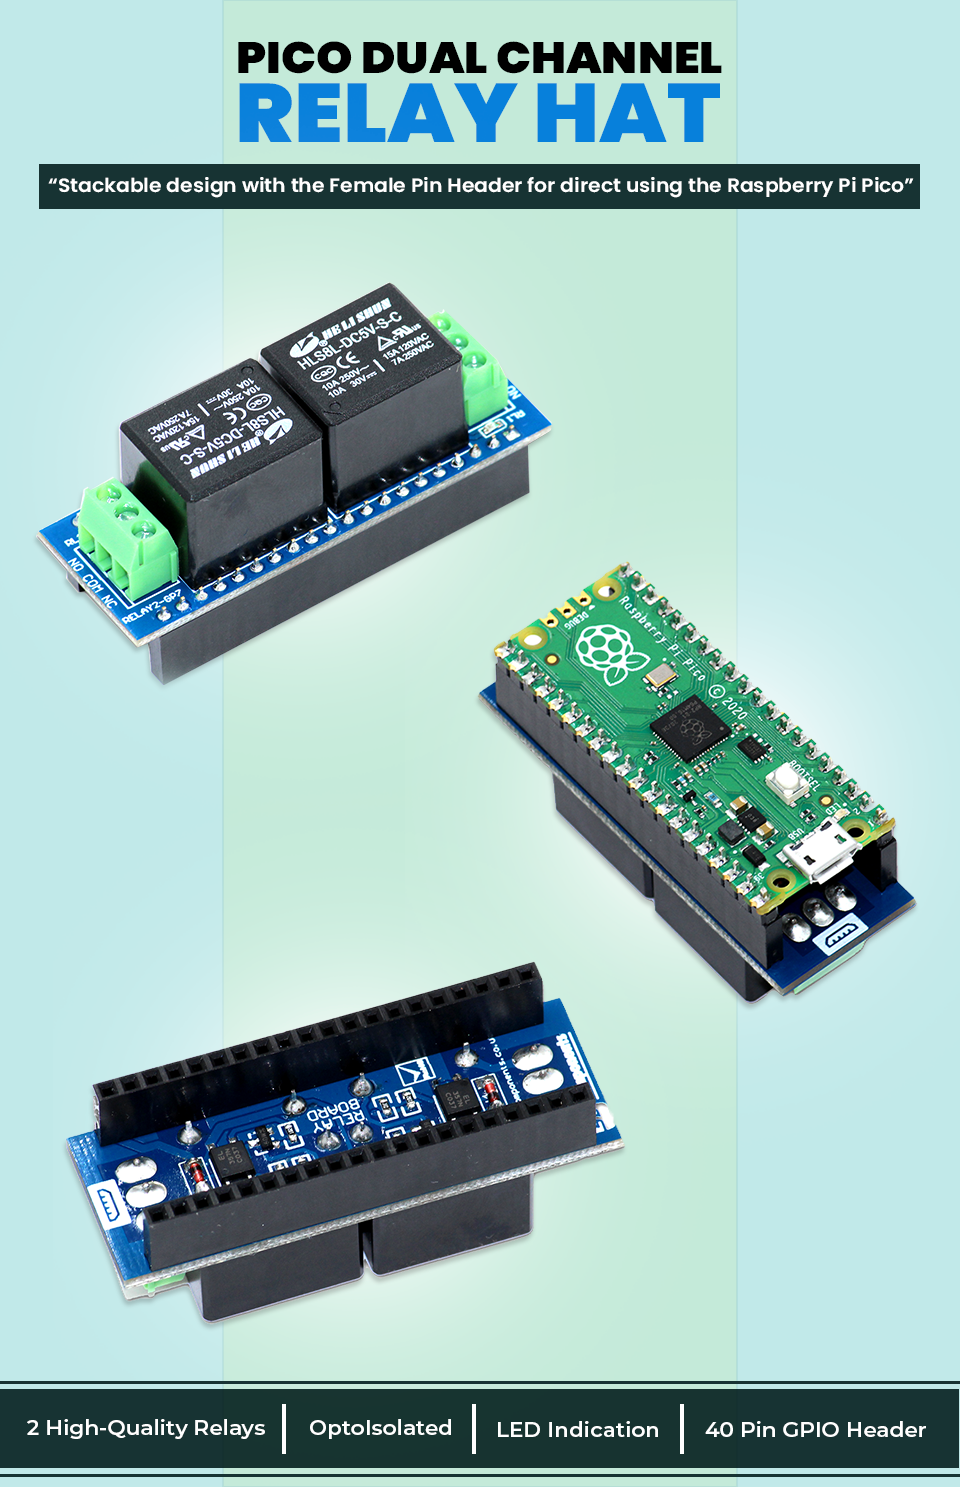 Pico Dual Channel Relay Banner